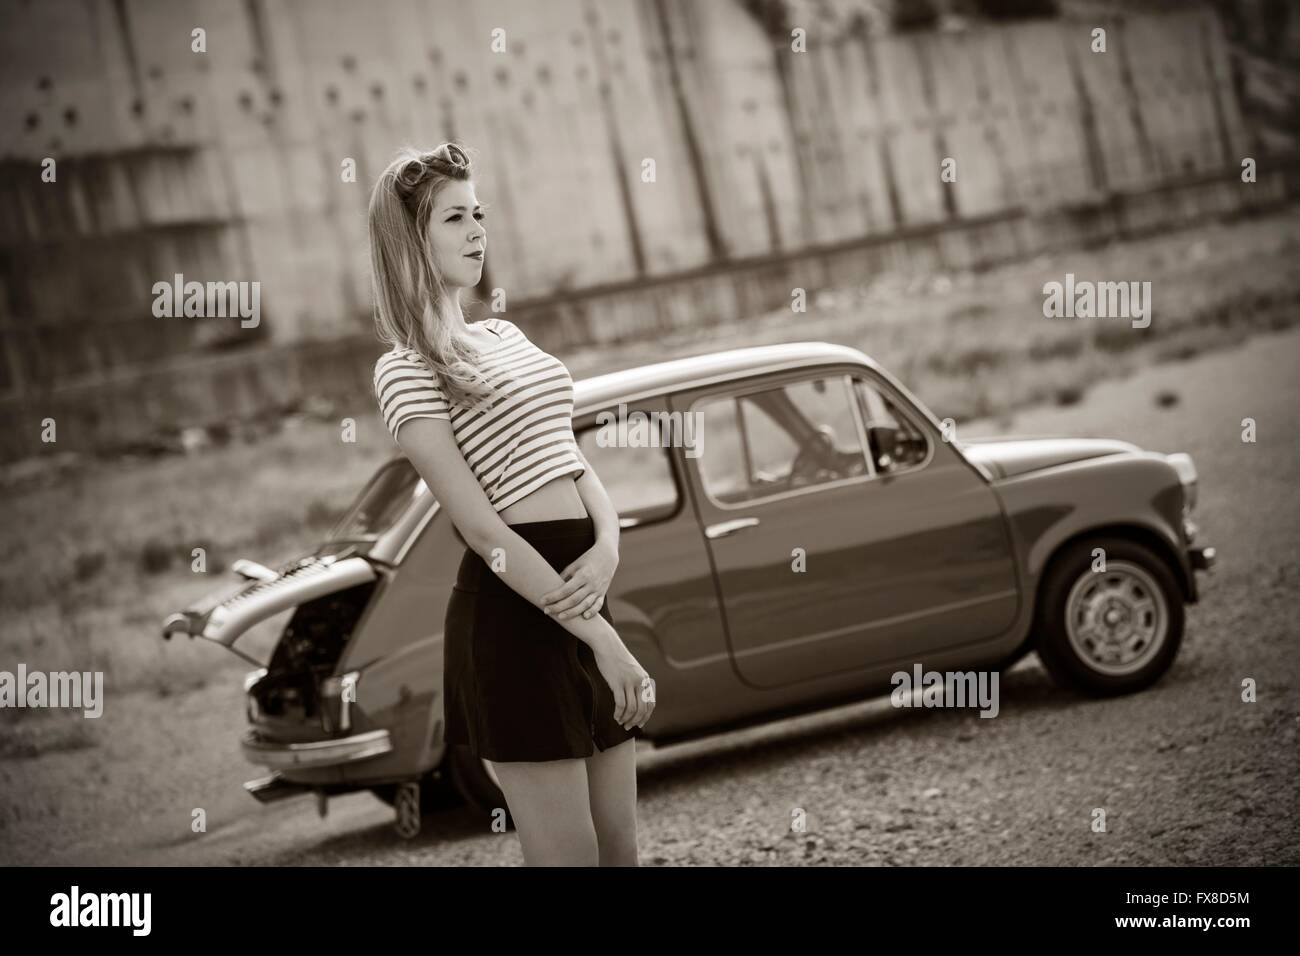 Beautiful Classic Fiat Car Wallpapers - Old Fiat Cars Gallery and ...